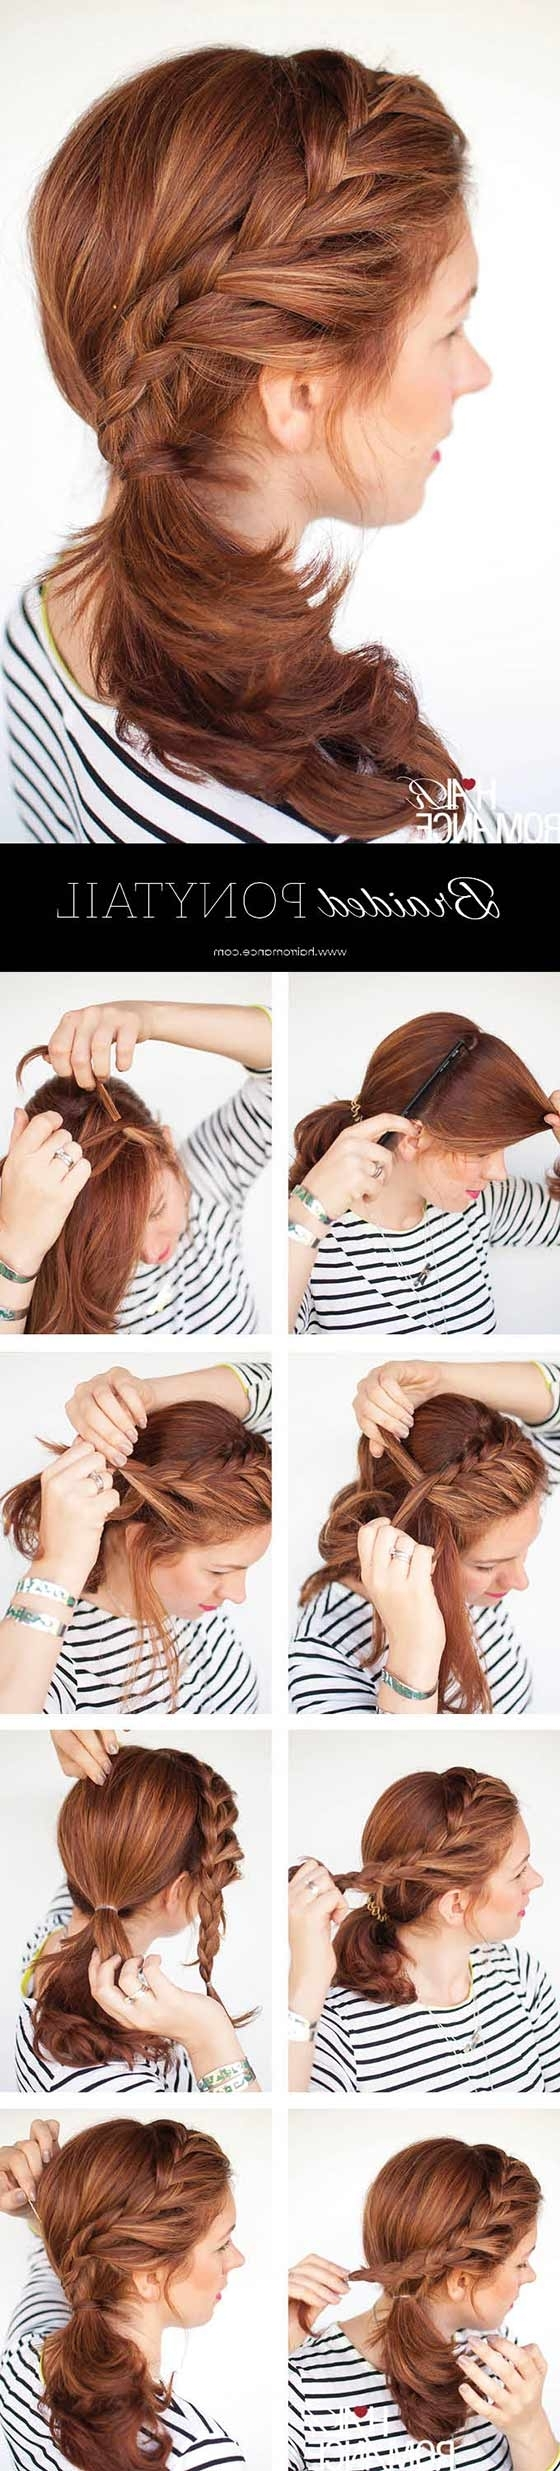 40 Braided Hairstyles For Long Hair Throughout Most Current Pair Of Braids With Wrapped Ponytail (View 14 of 15)